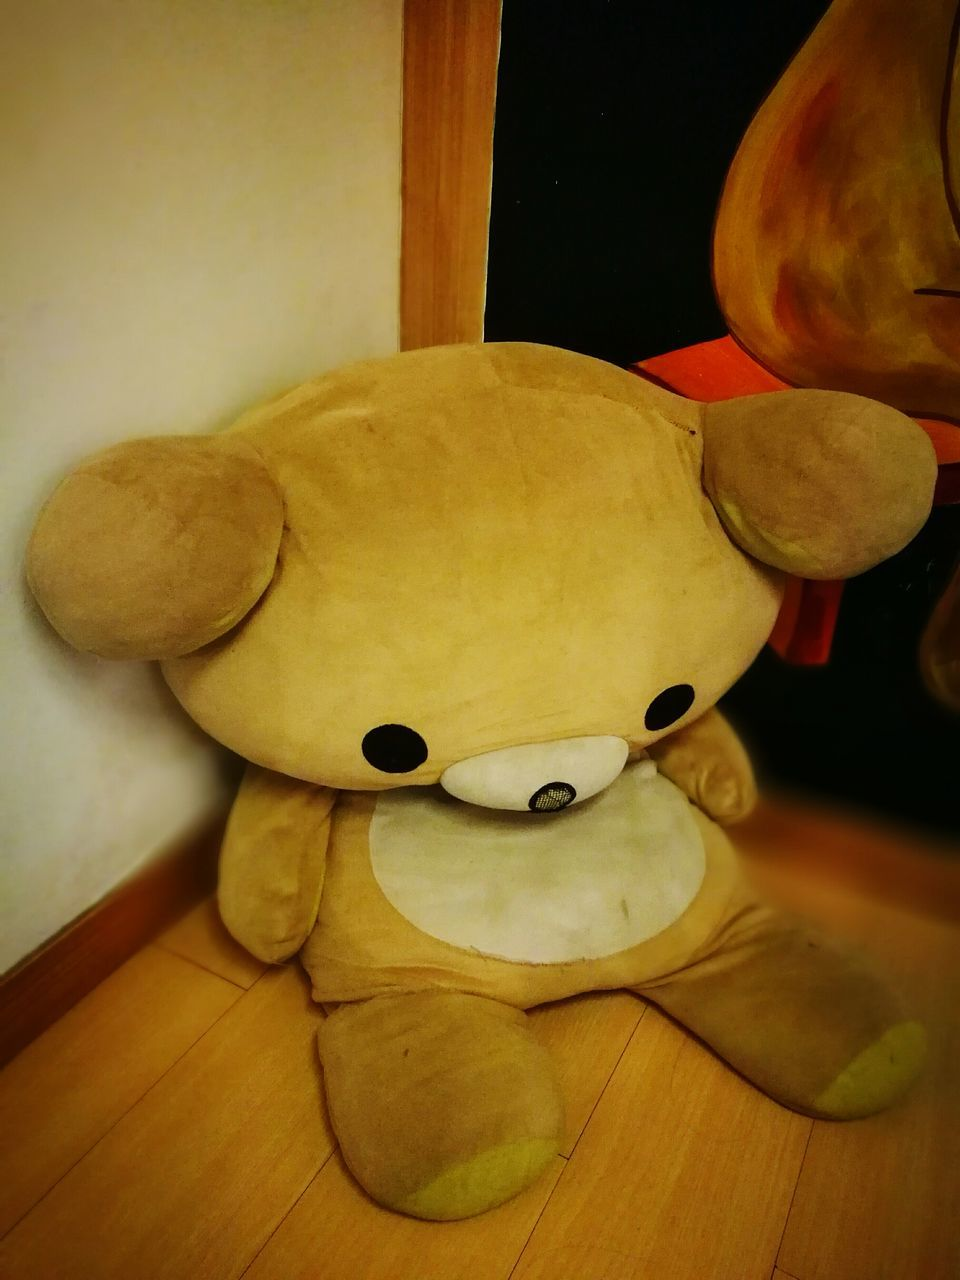 indoors, animal representation, no people, stuffed toy, table, home interior, close-up, wood - material, night, teddy bear